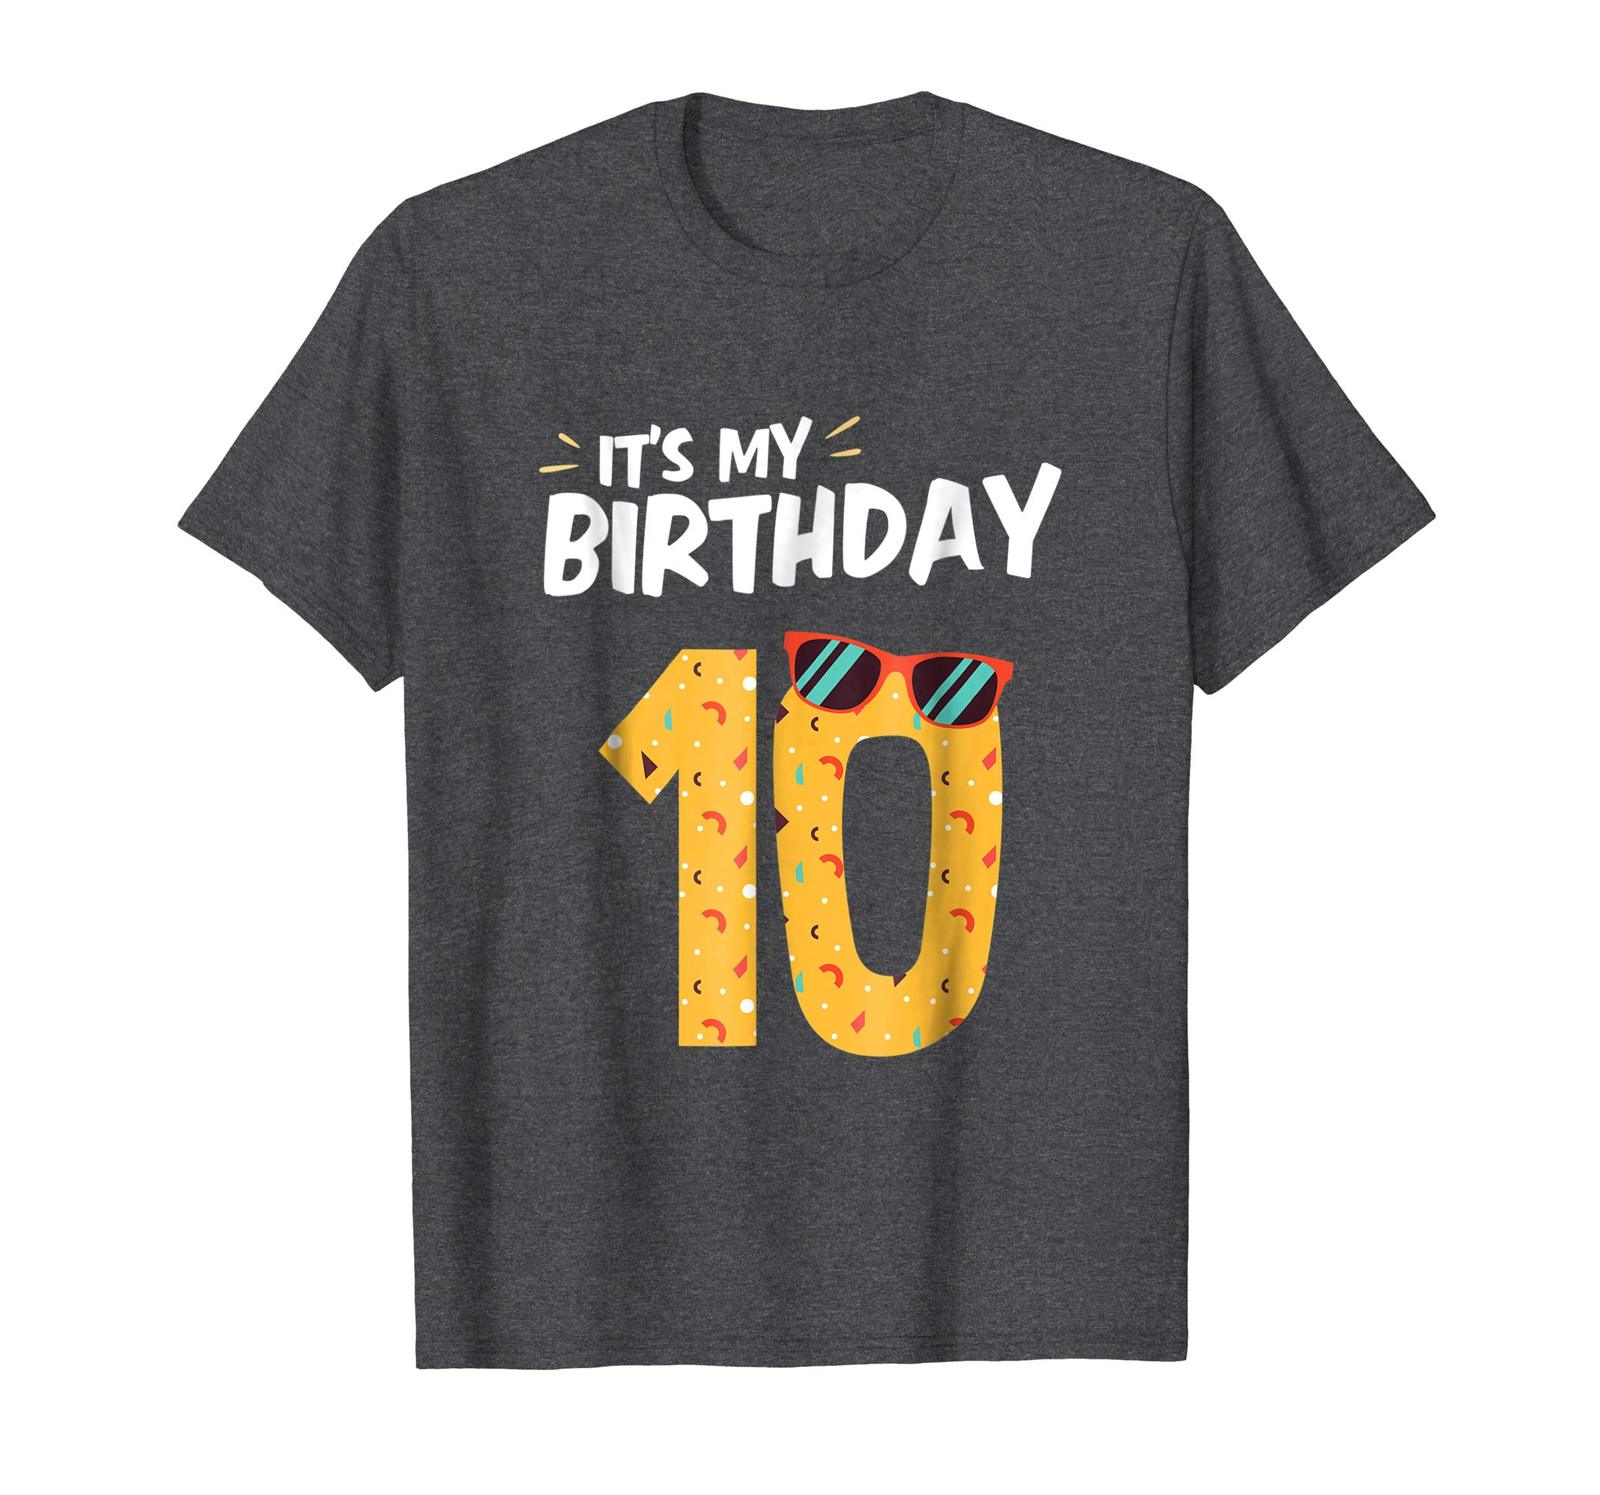 Primary image for Brother Shirts - 10th Birthday Boy Birthday Girl Tee Shirt Bday Gift Apparel Men